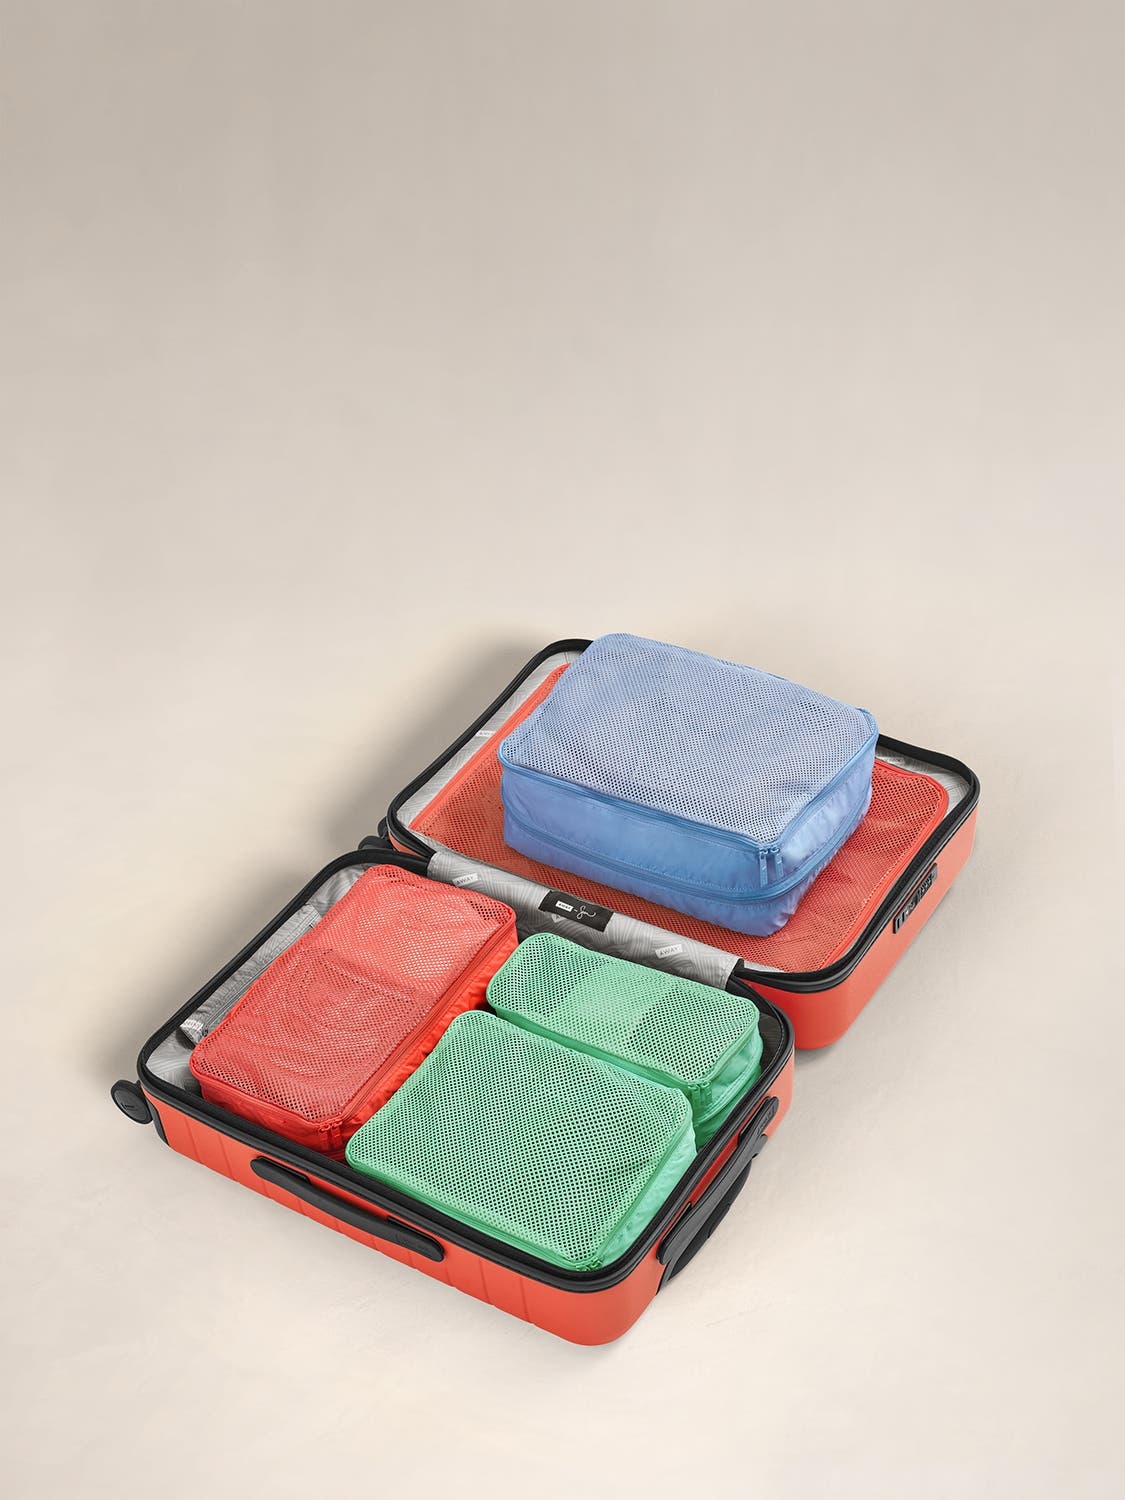 Multicolor expandable travel packing cubes displayed in an Away suitcase